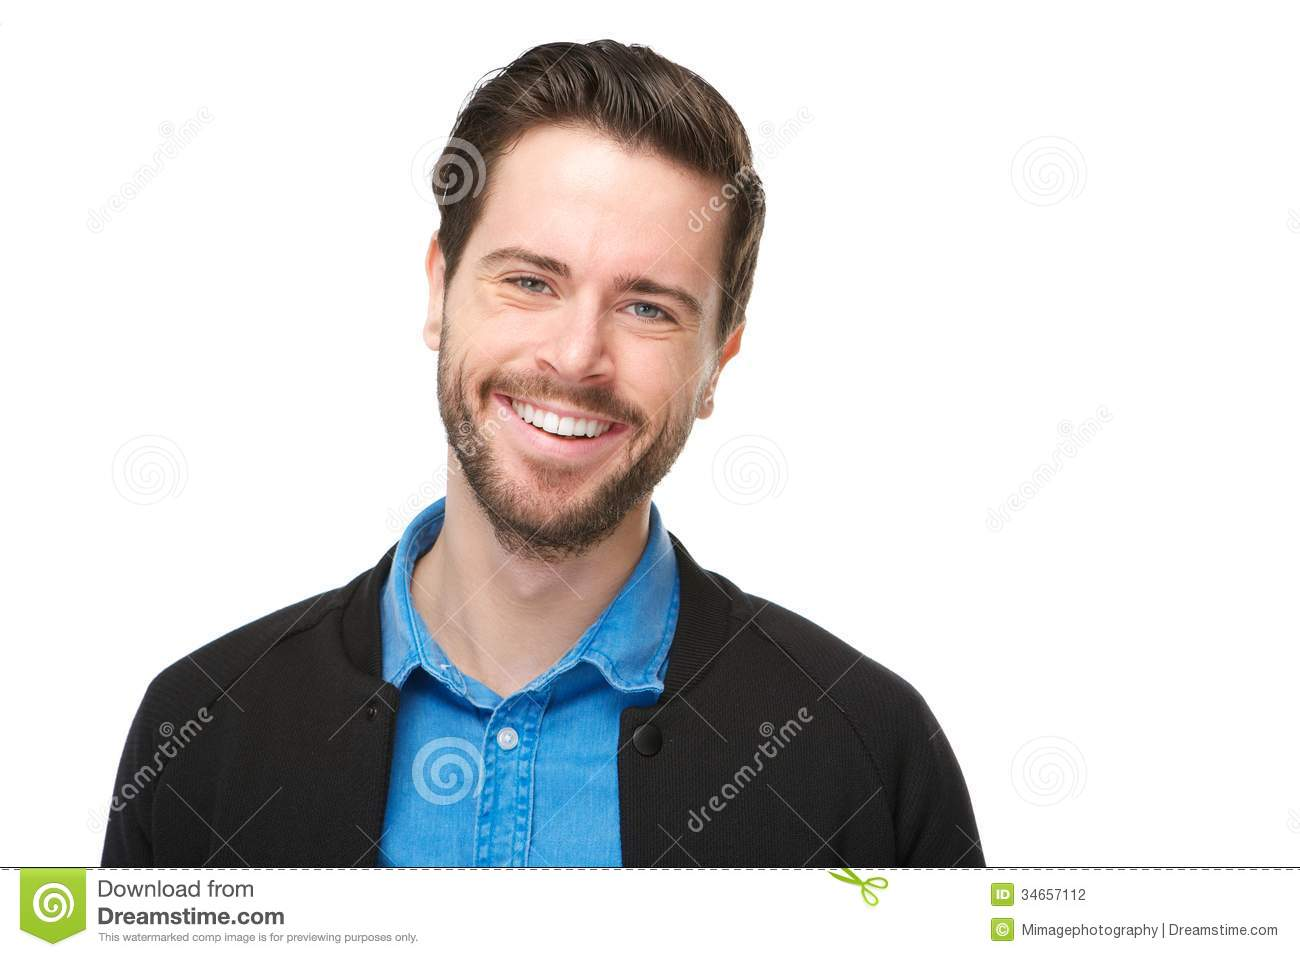 Portrait of a cheerful man with beard smiling